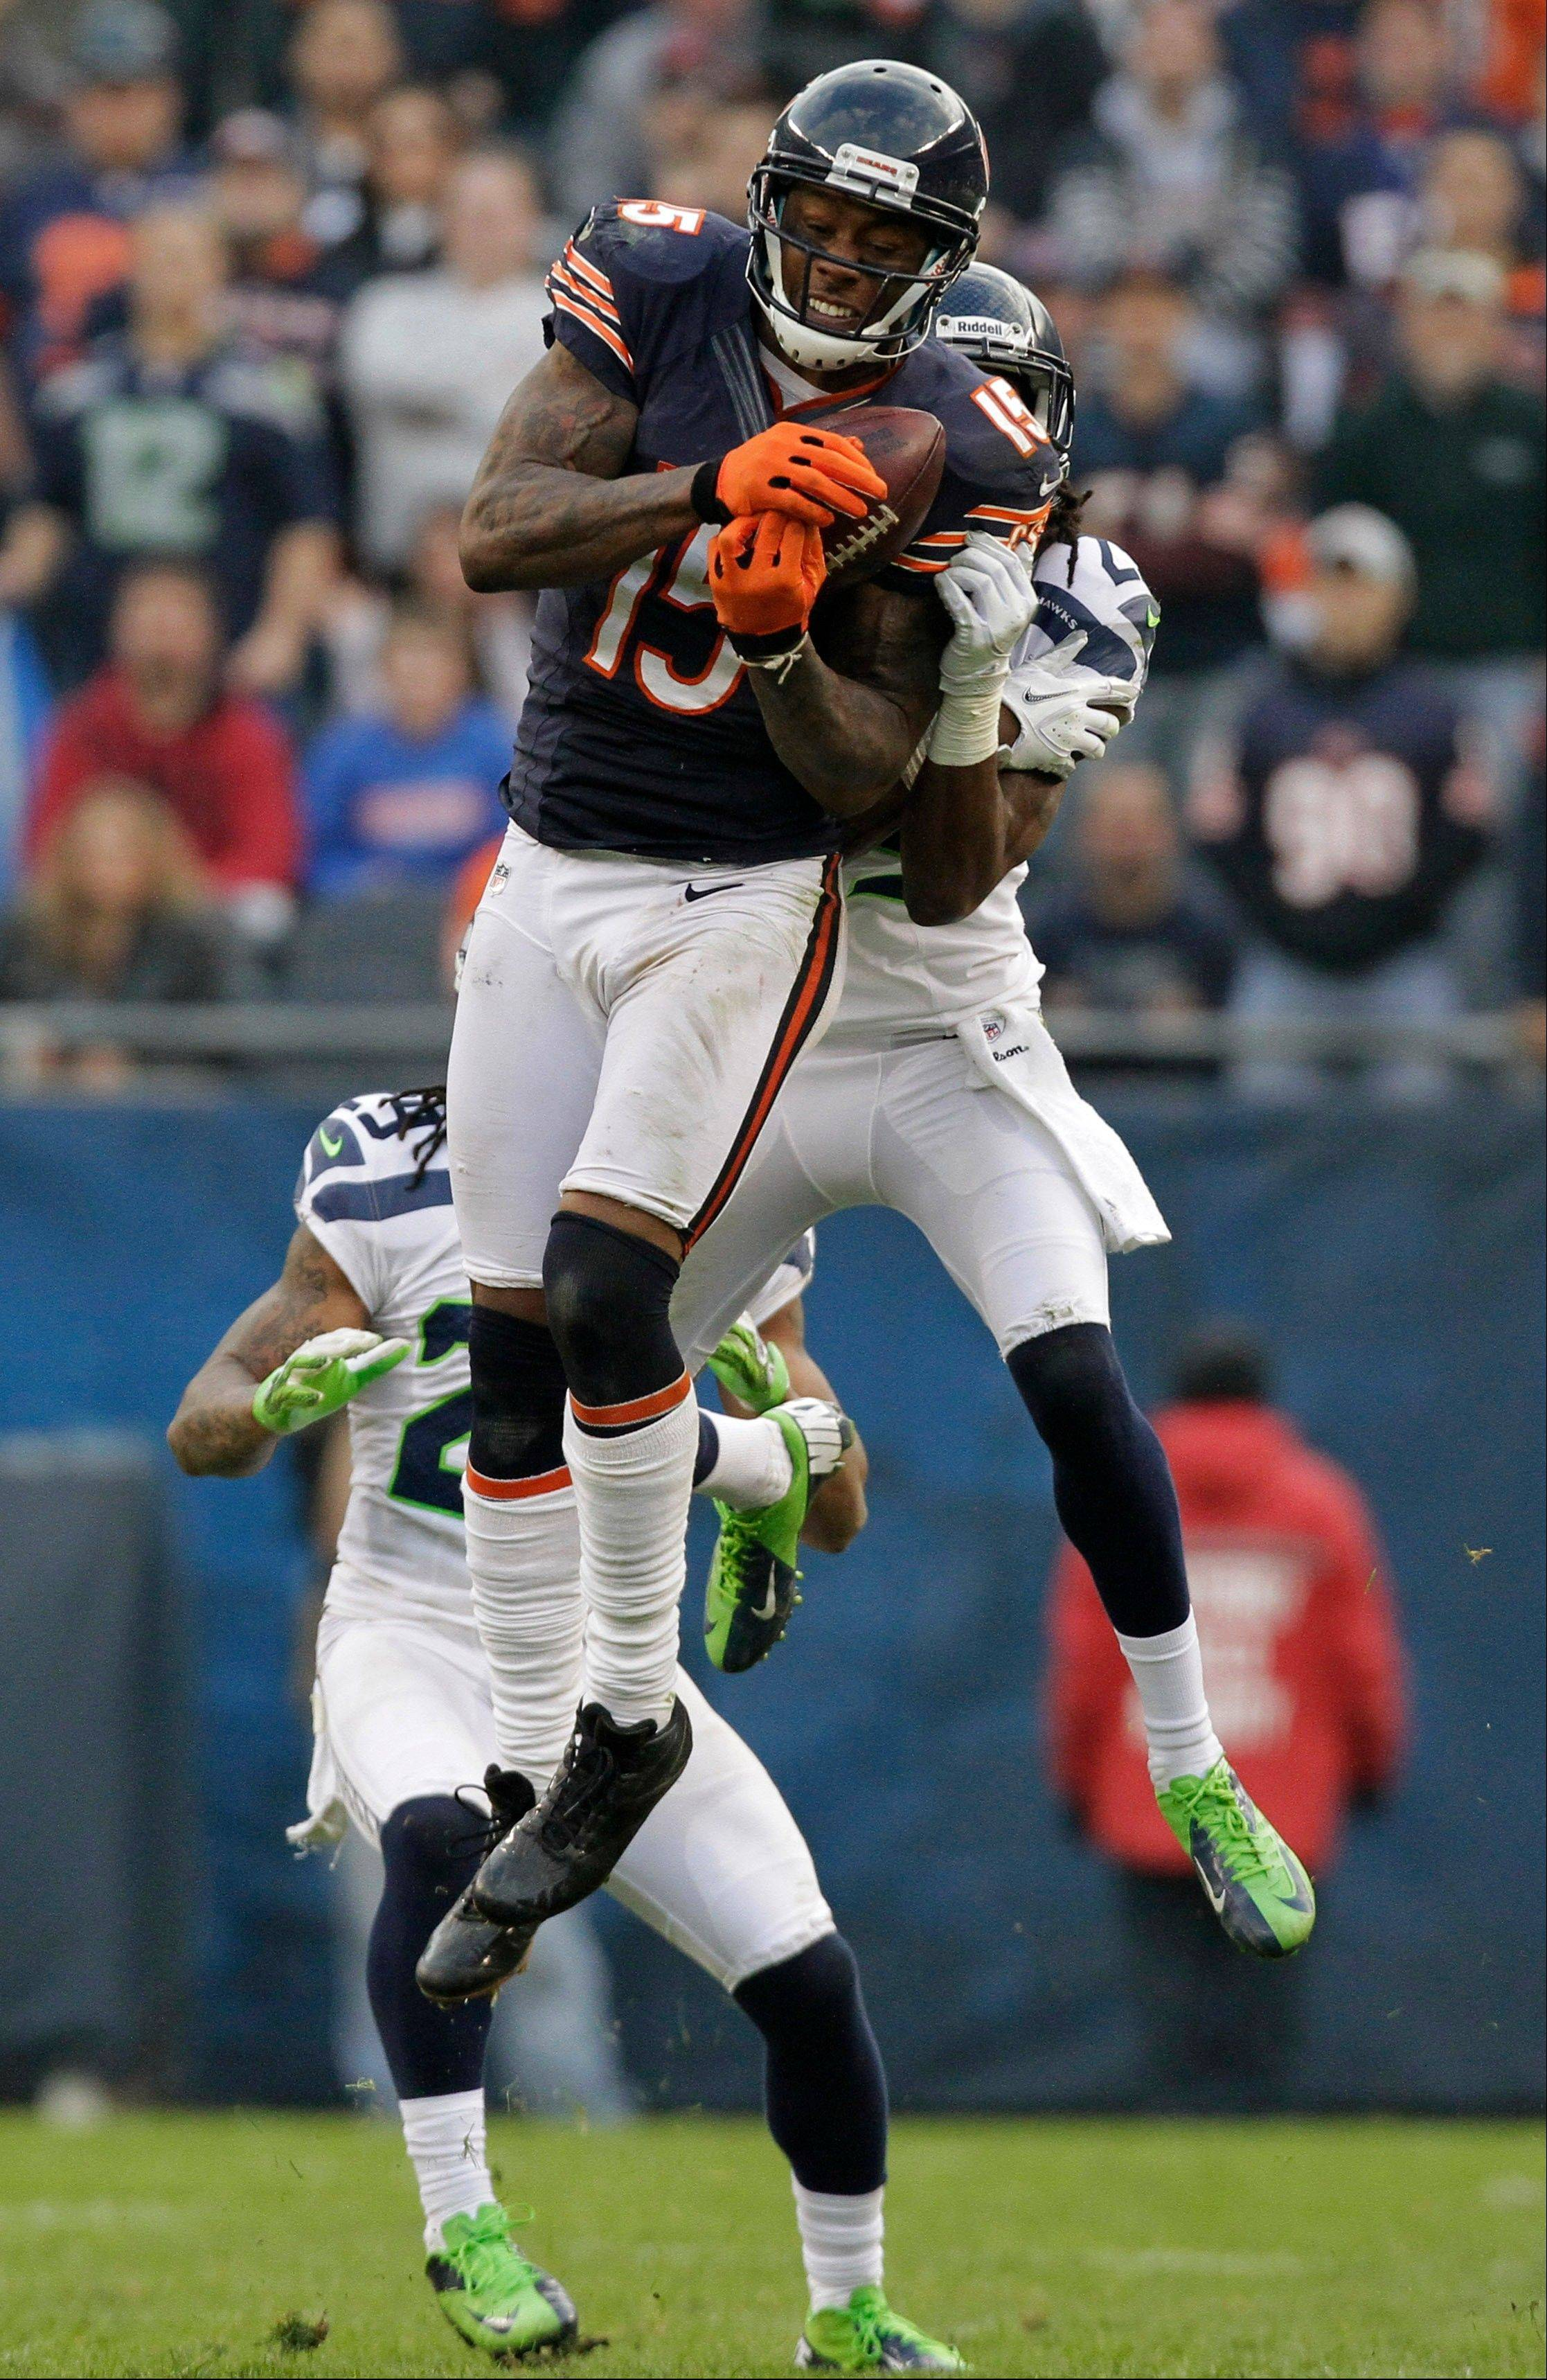 Bears wide receiver Brandon Marshall, here making a catch against Seattle Seahawks cornerback Richard Sherman, says Sunday's game against the Green Bay Packers is personal.